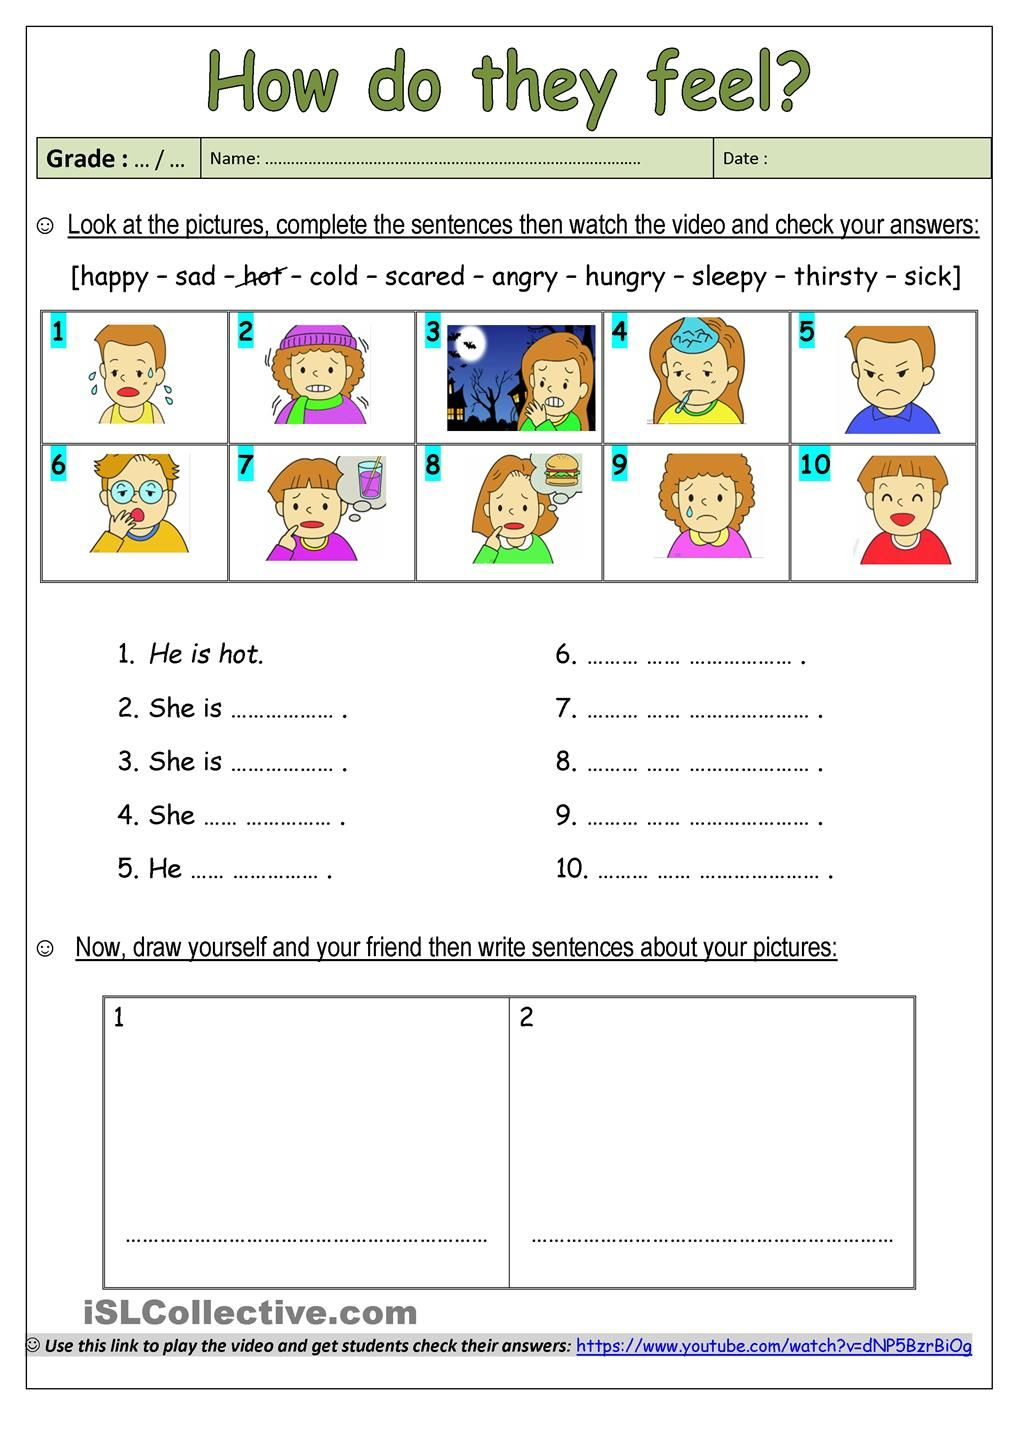 This Worksheet Would Be Helpful With Learning Emotions And